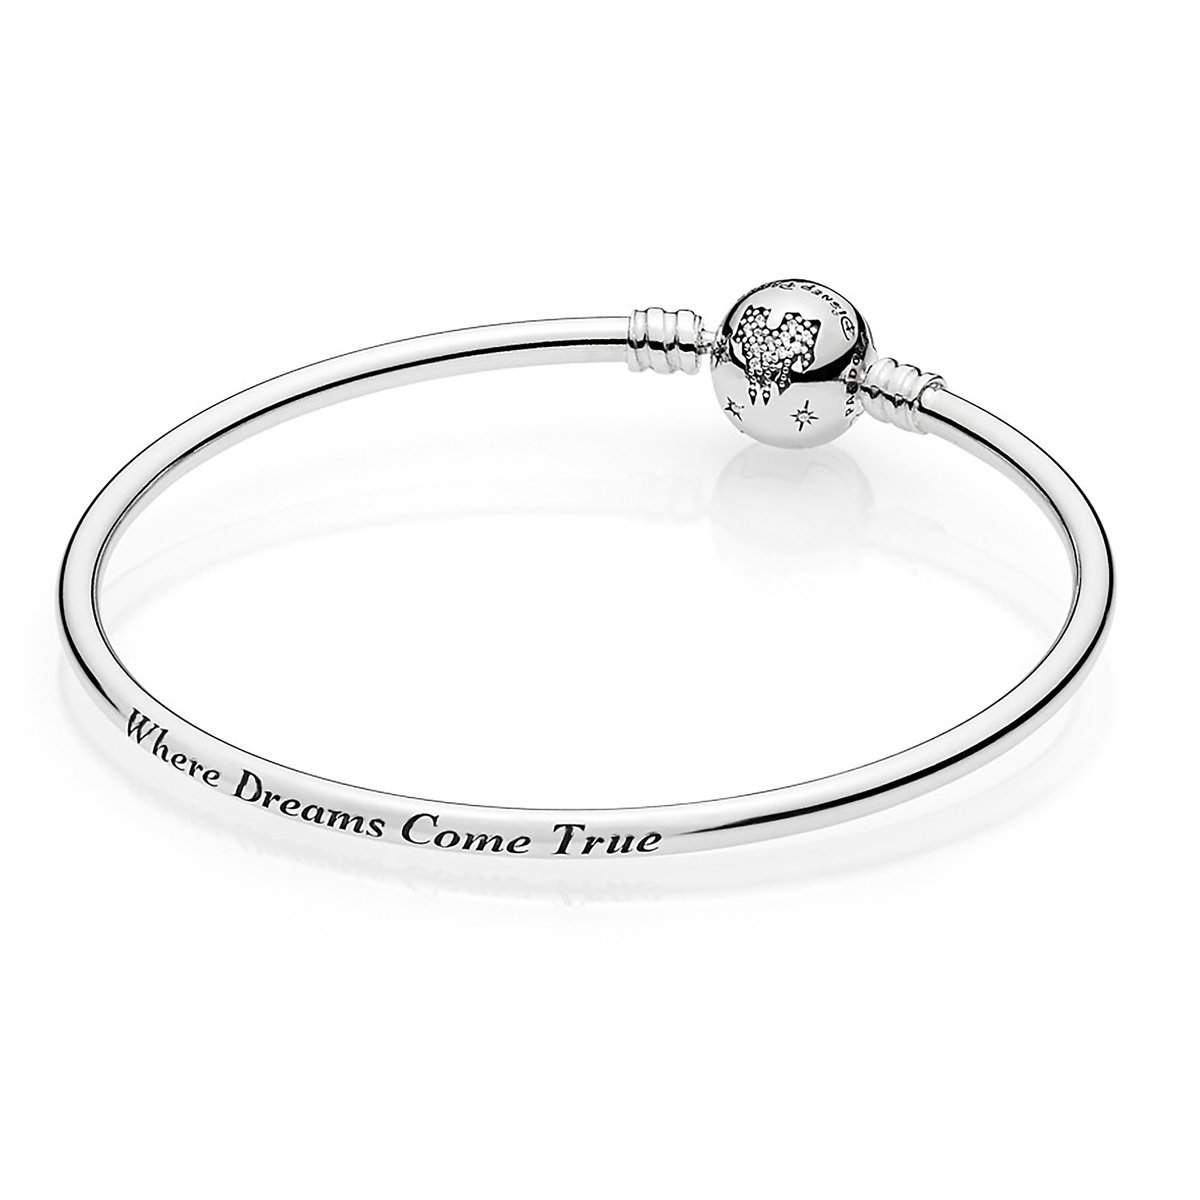 Disney Pandora Bangle - Fantasyland Castle Bracelet - 8.3